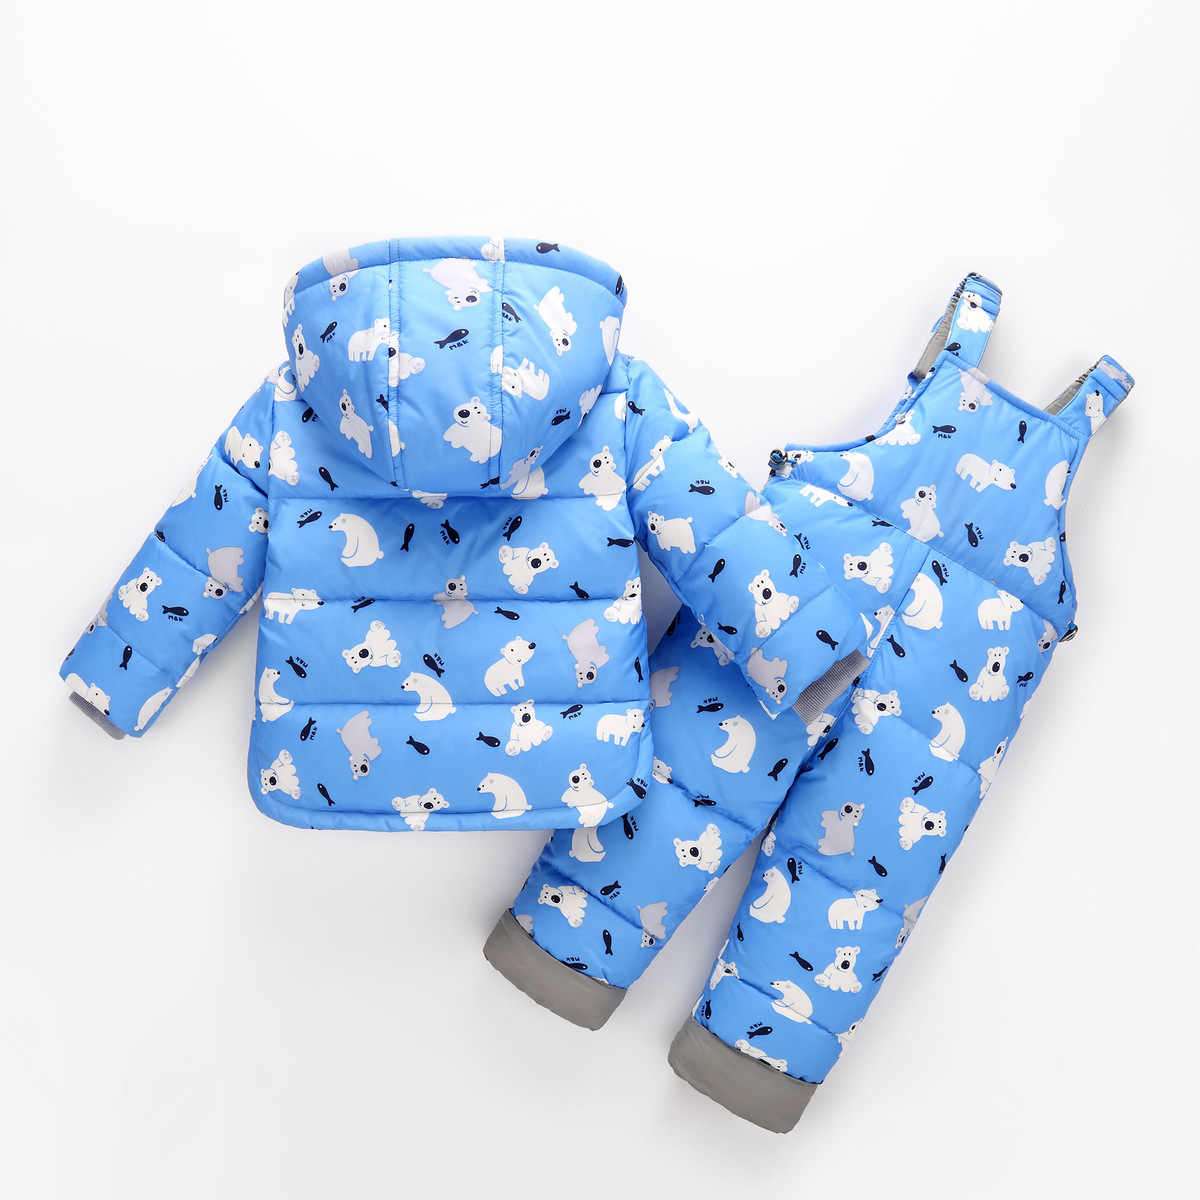 f9bb05a7fab72 ... Baby Girl Boy Clothes Winter Outwear Coat Snow Wear 2pcs Sets Cartoon  Down Thick Snowsuit Toddler ...